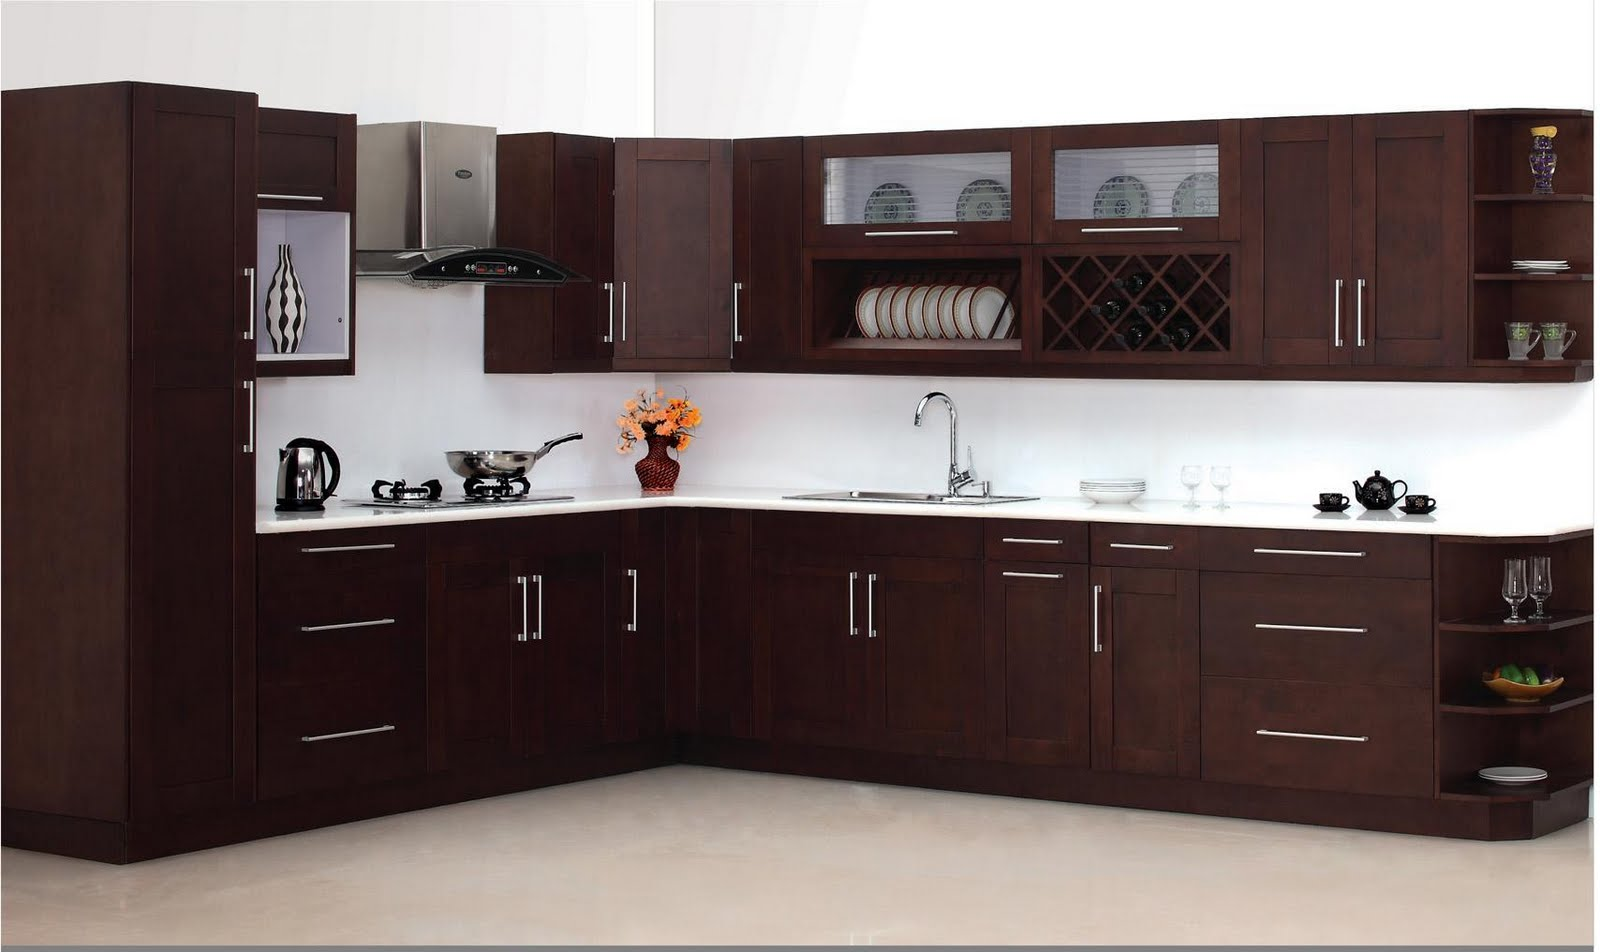 Espresso Shaker Kitchen Cabinets Images